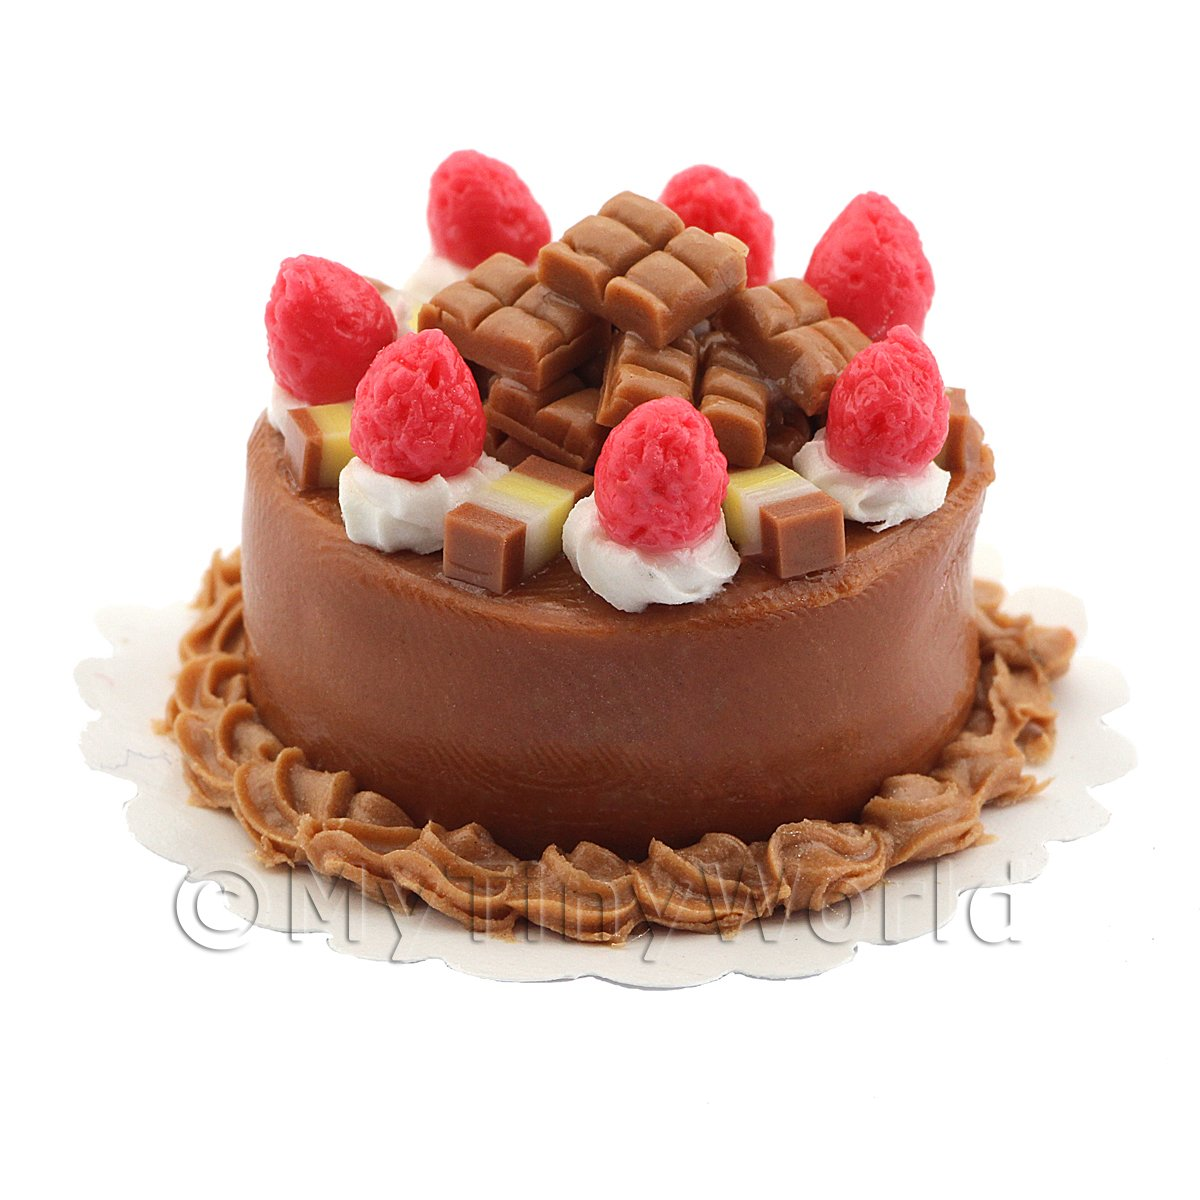 Dolls House Miniature Chocolate Strawberry Fudge Cake